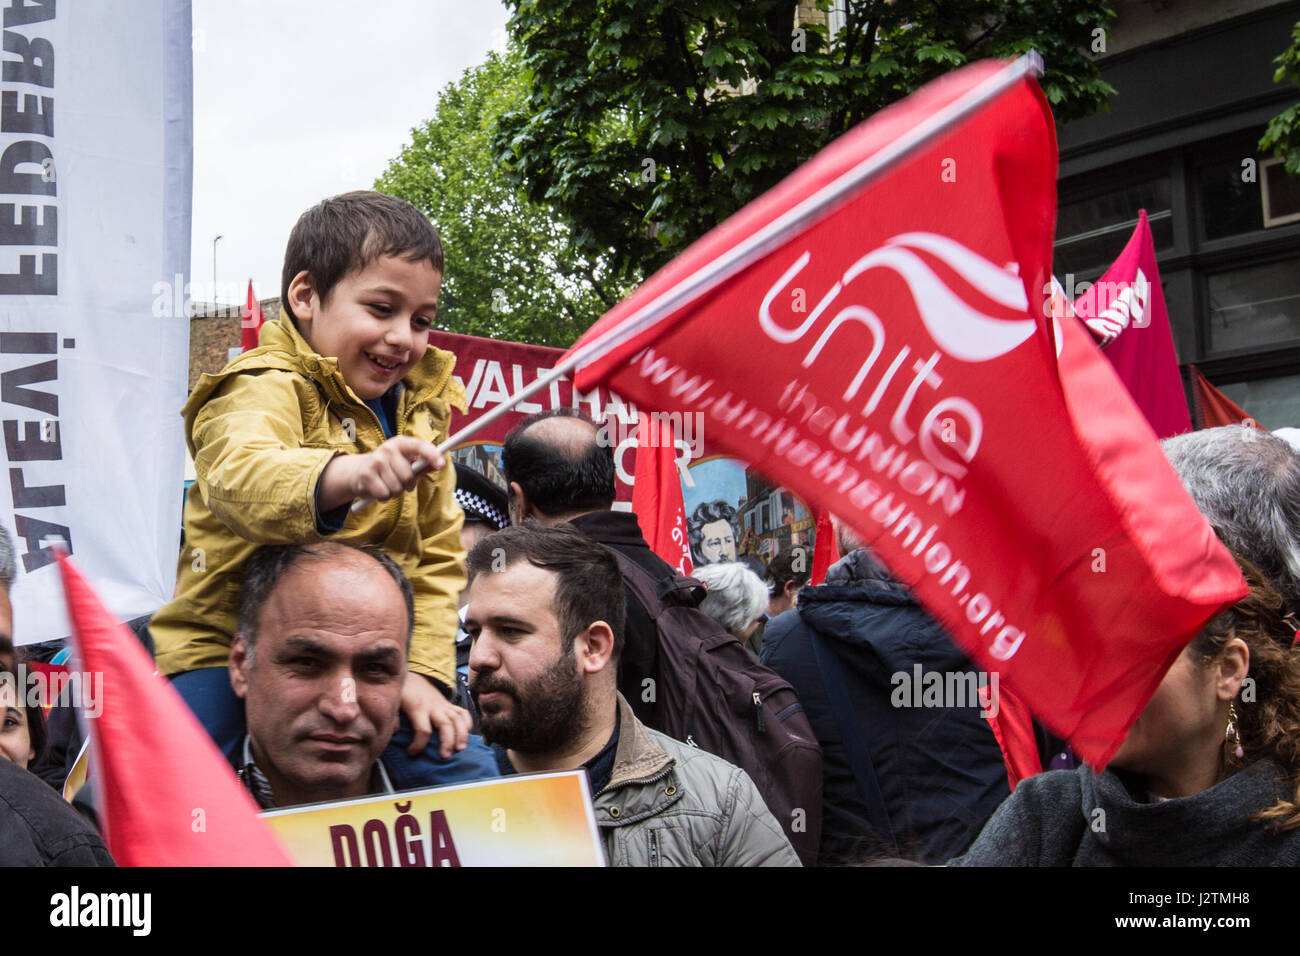 London, UK. 1st May, 2017.  A boy waves a union flag on the traditional May Day workers march from Clerkenwell Green - Stock Image